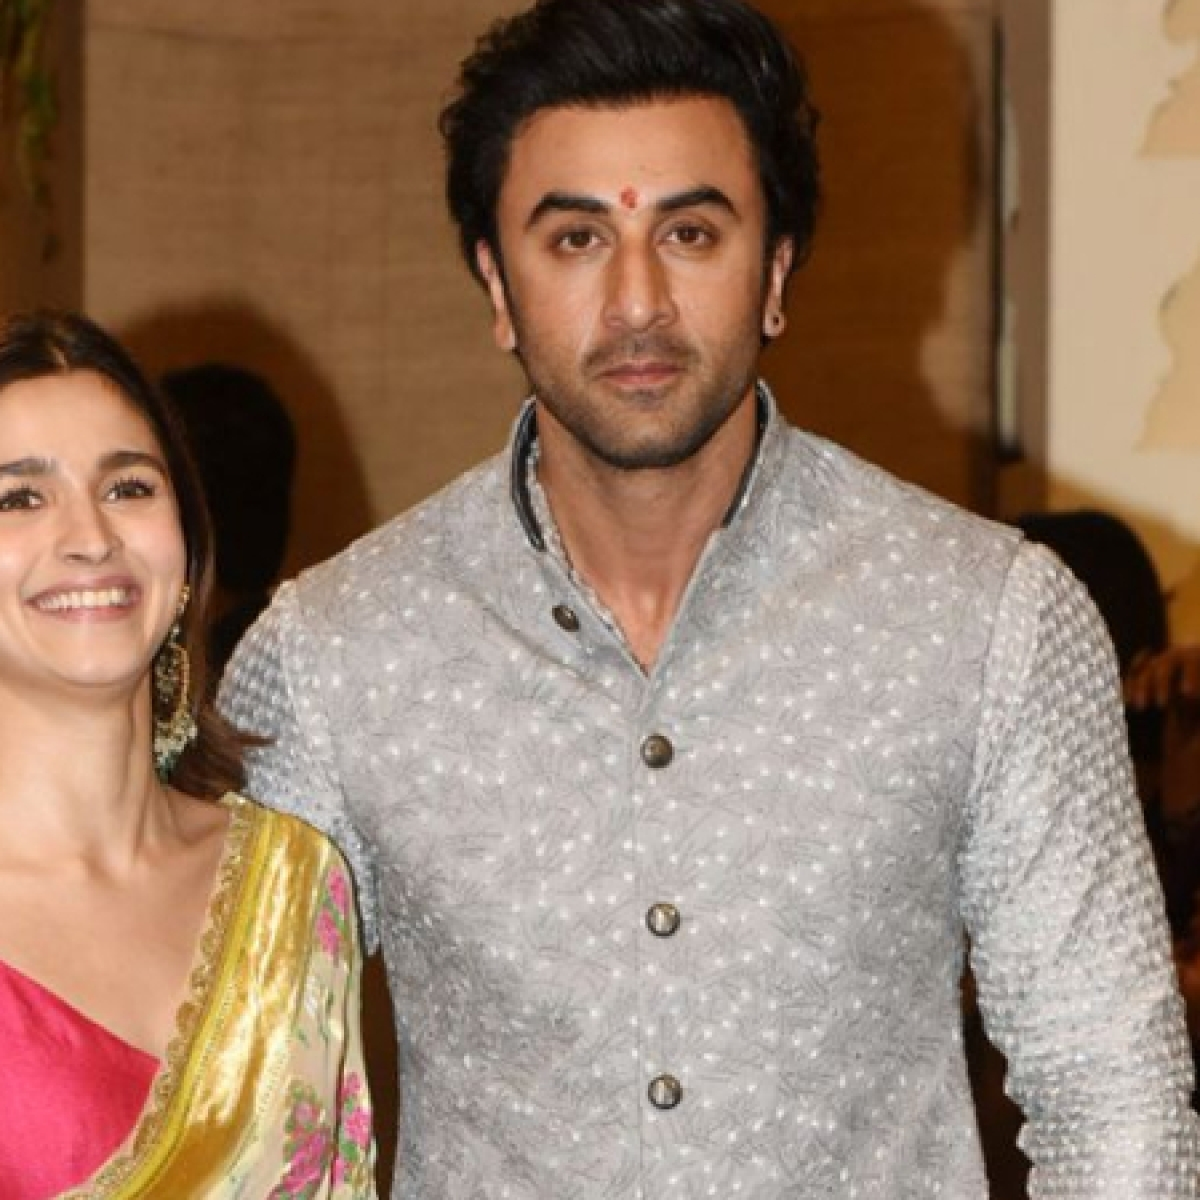 Watch Alia Bhatt and Ranbir Kapoor talk about their lucky charms to Sonam Kapoor